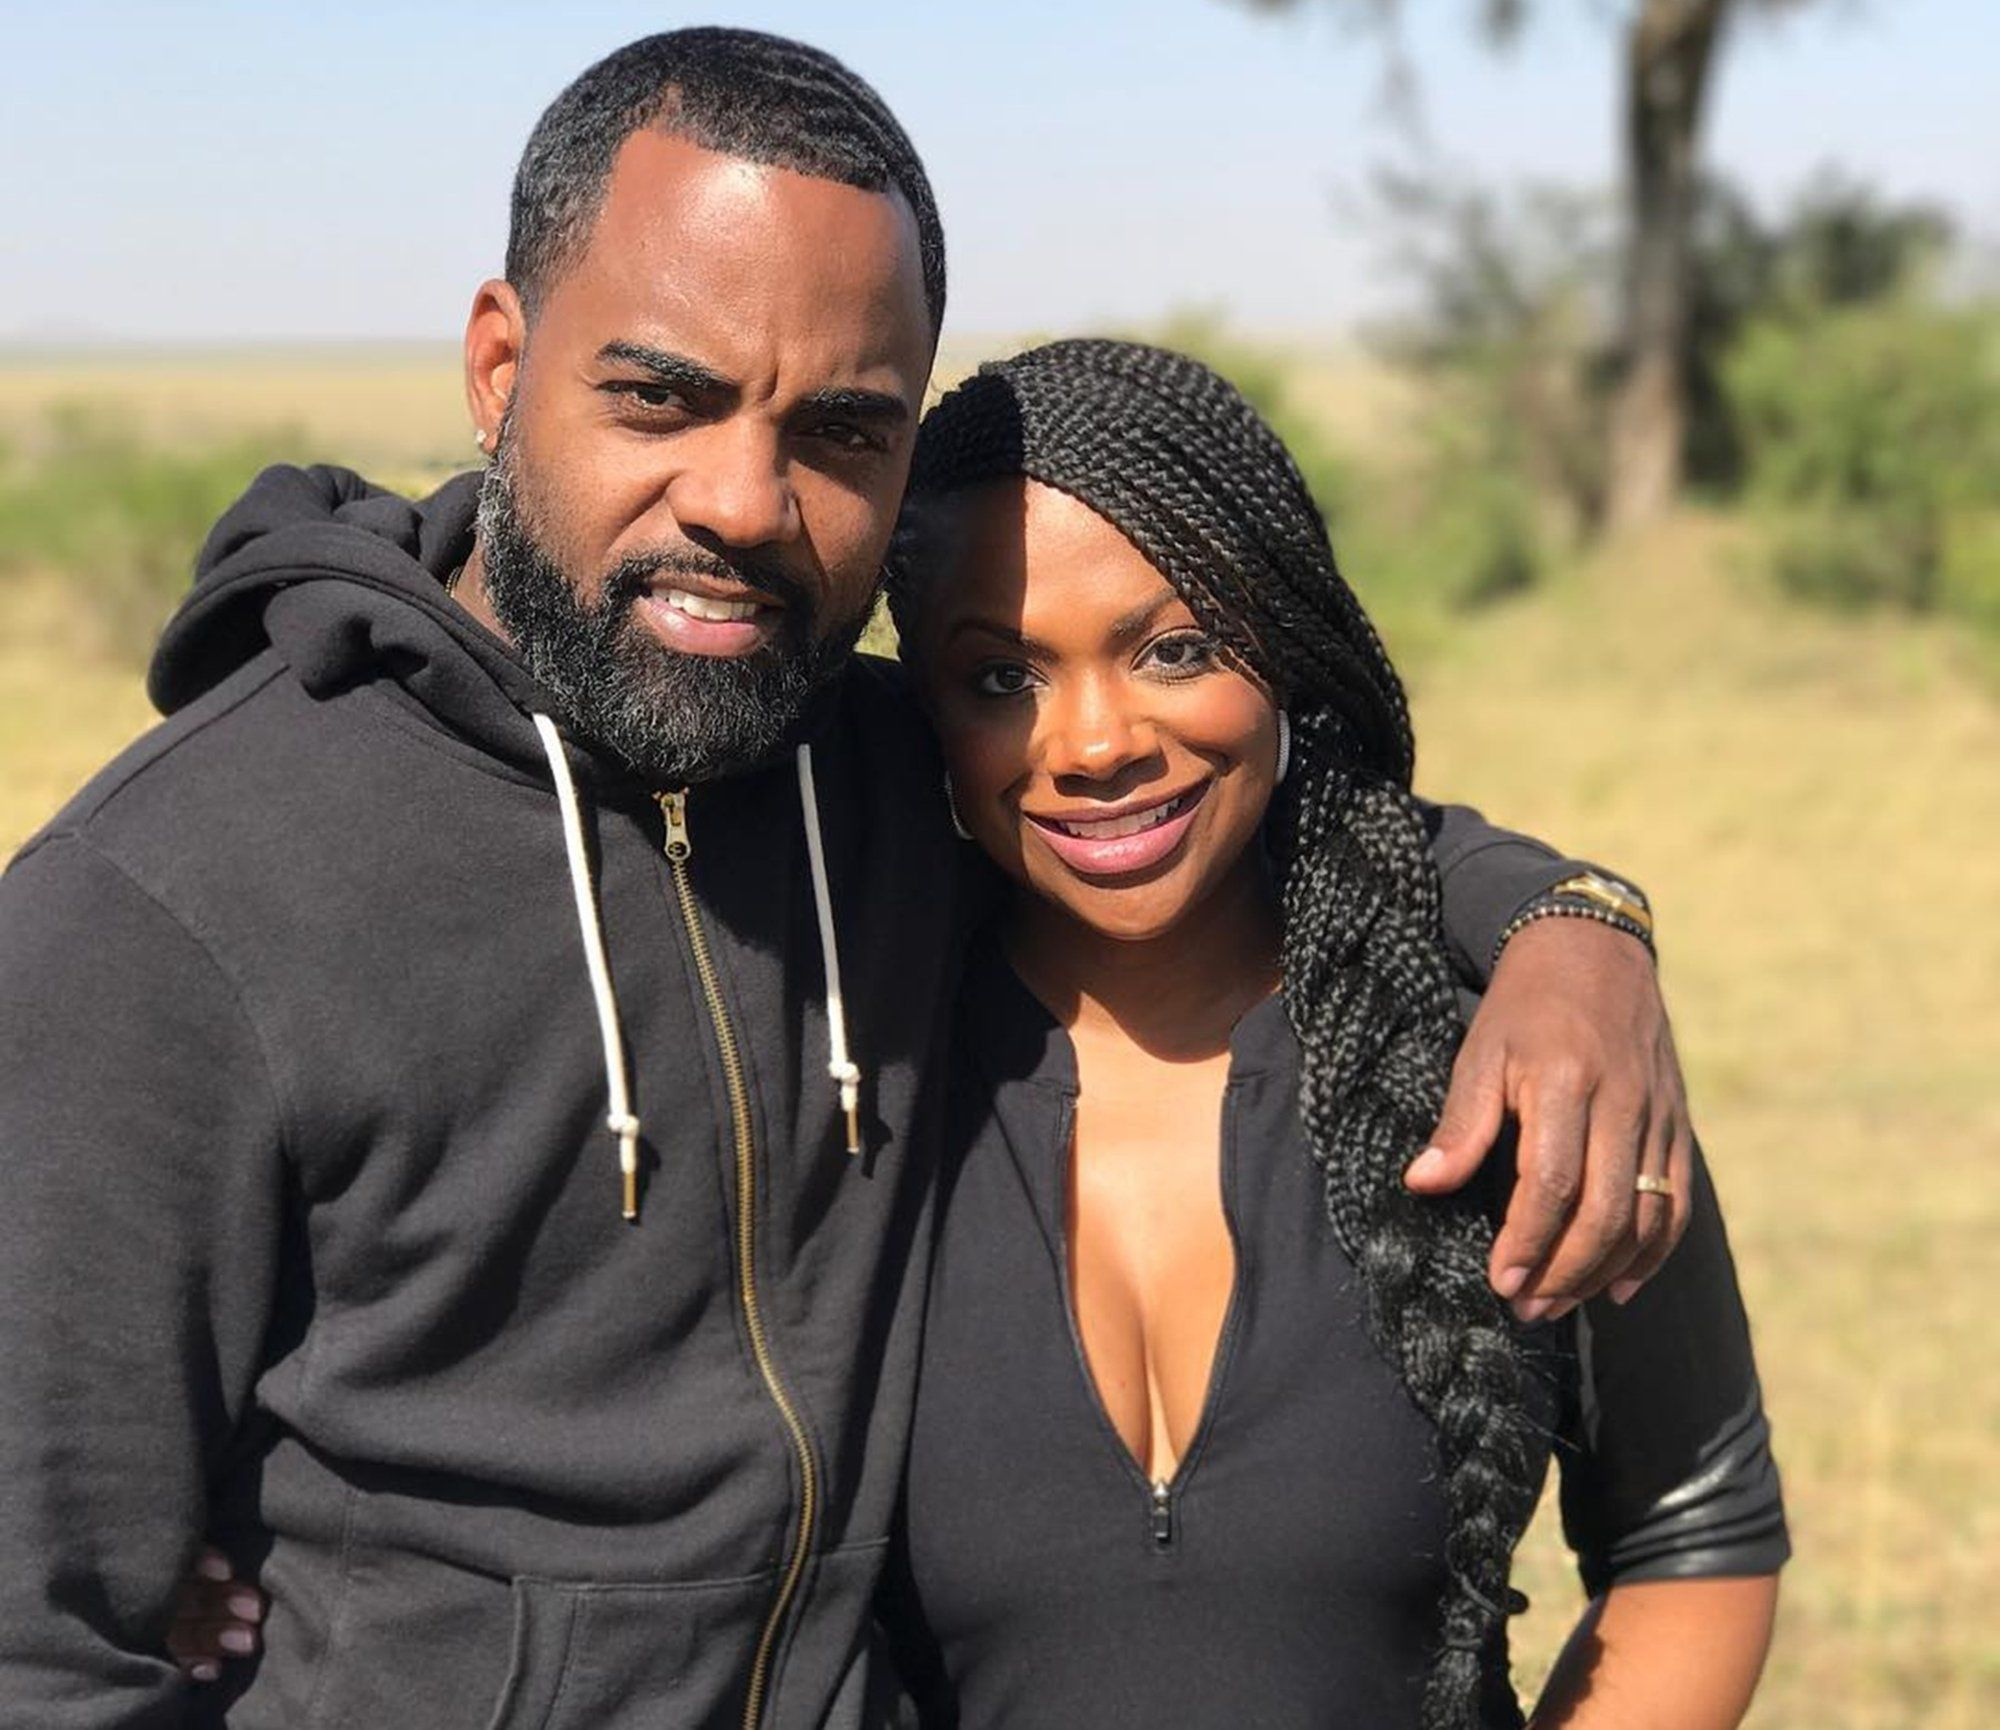 kandi-burruss-has-a-new-speak-on-it-video-out-check-it-out-here